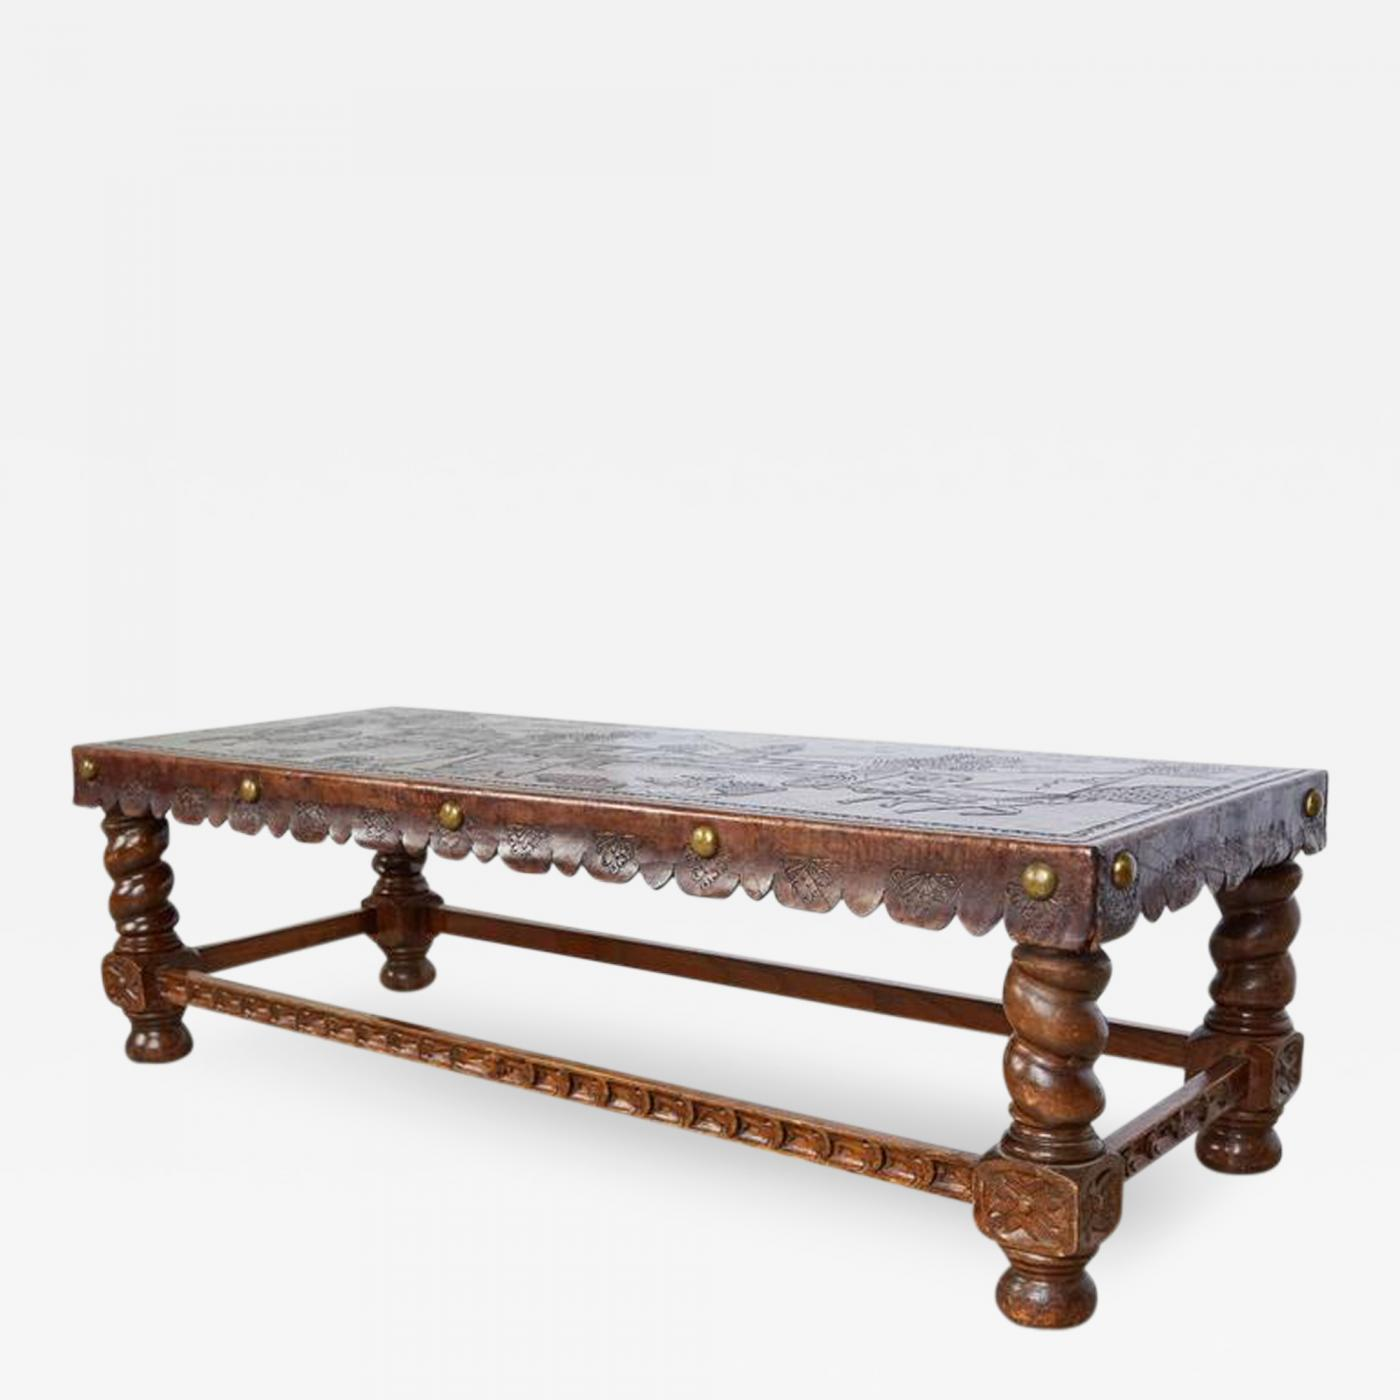 Spanish baroque tooled leather bench or coffee table colonial listings furniture tables center tables geotapseo Image collections